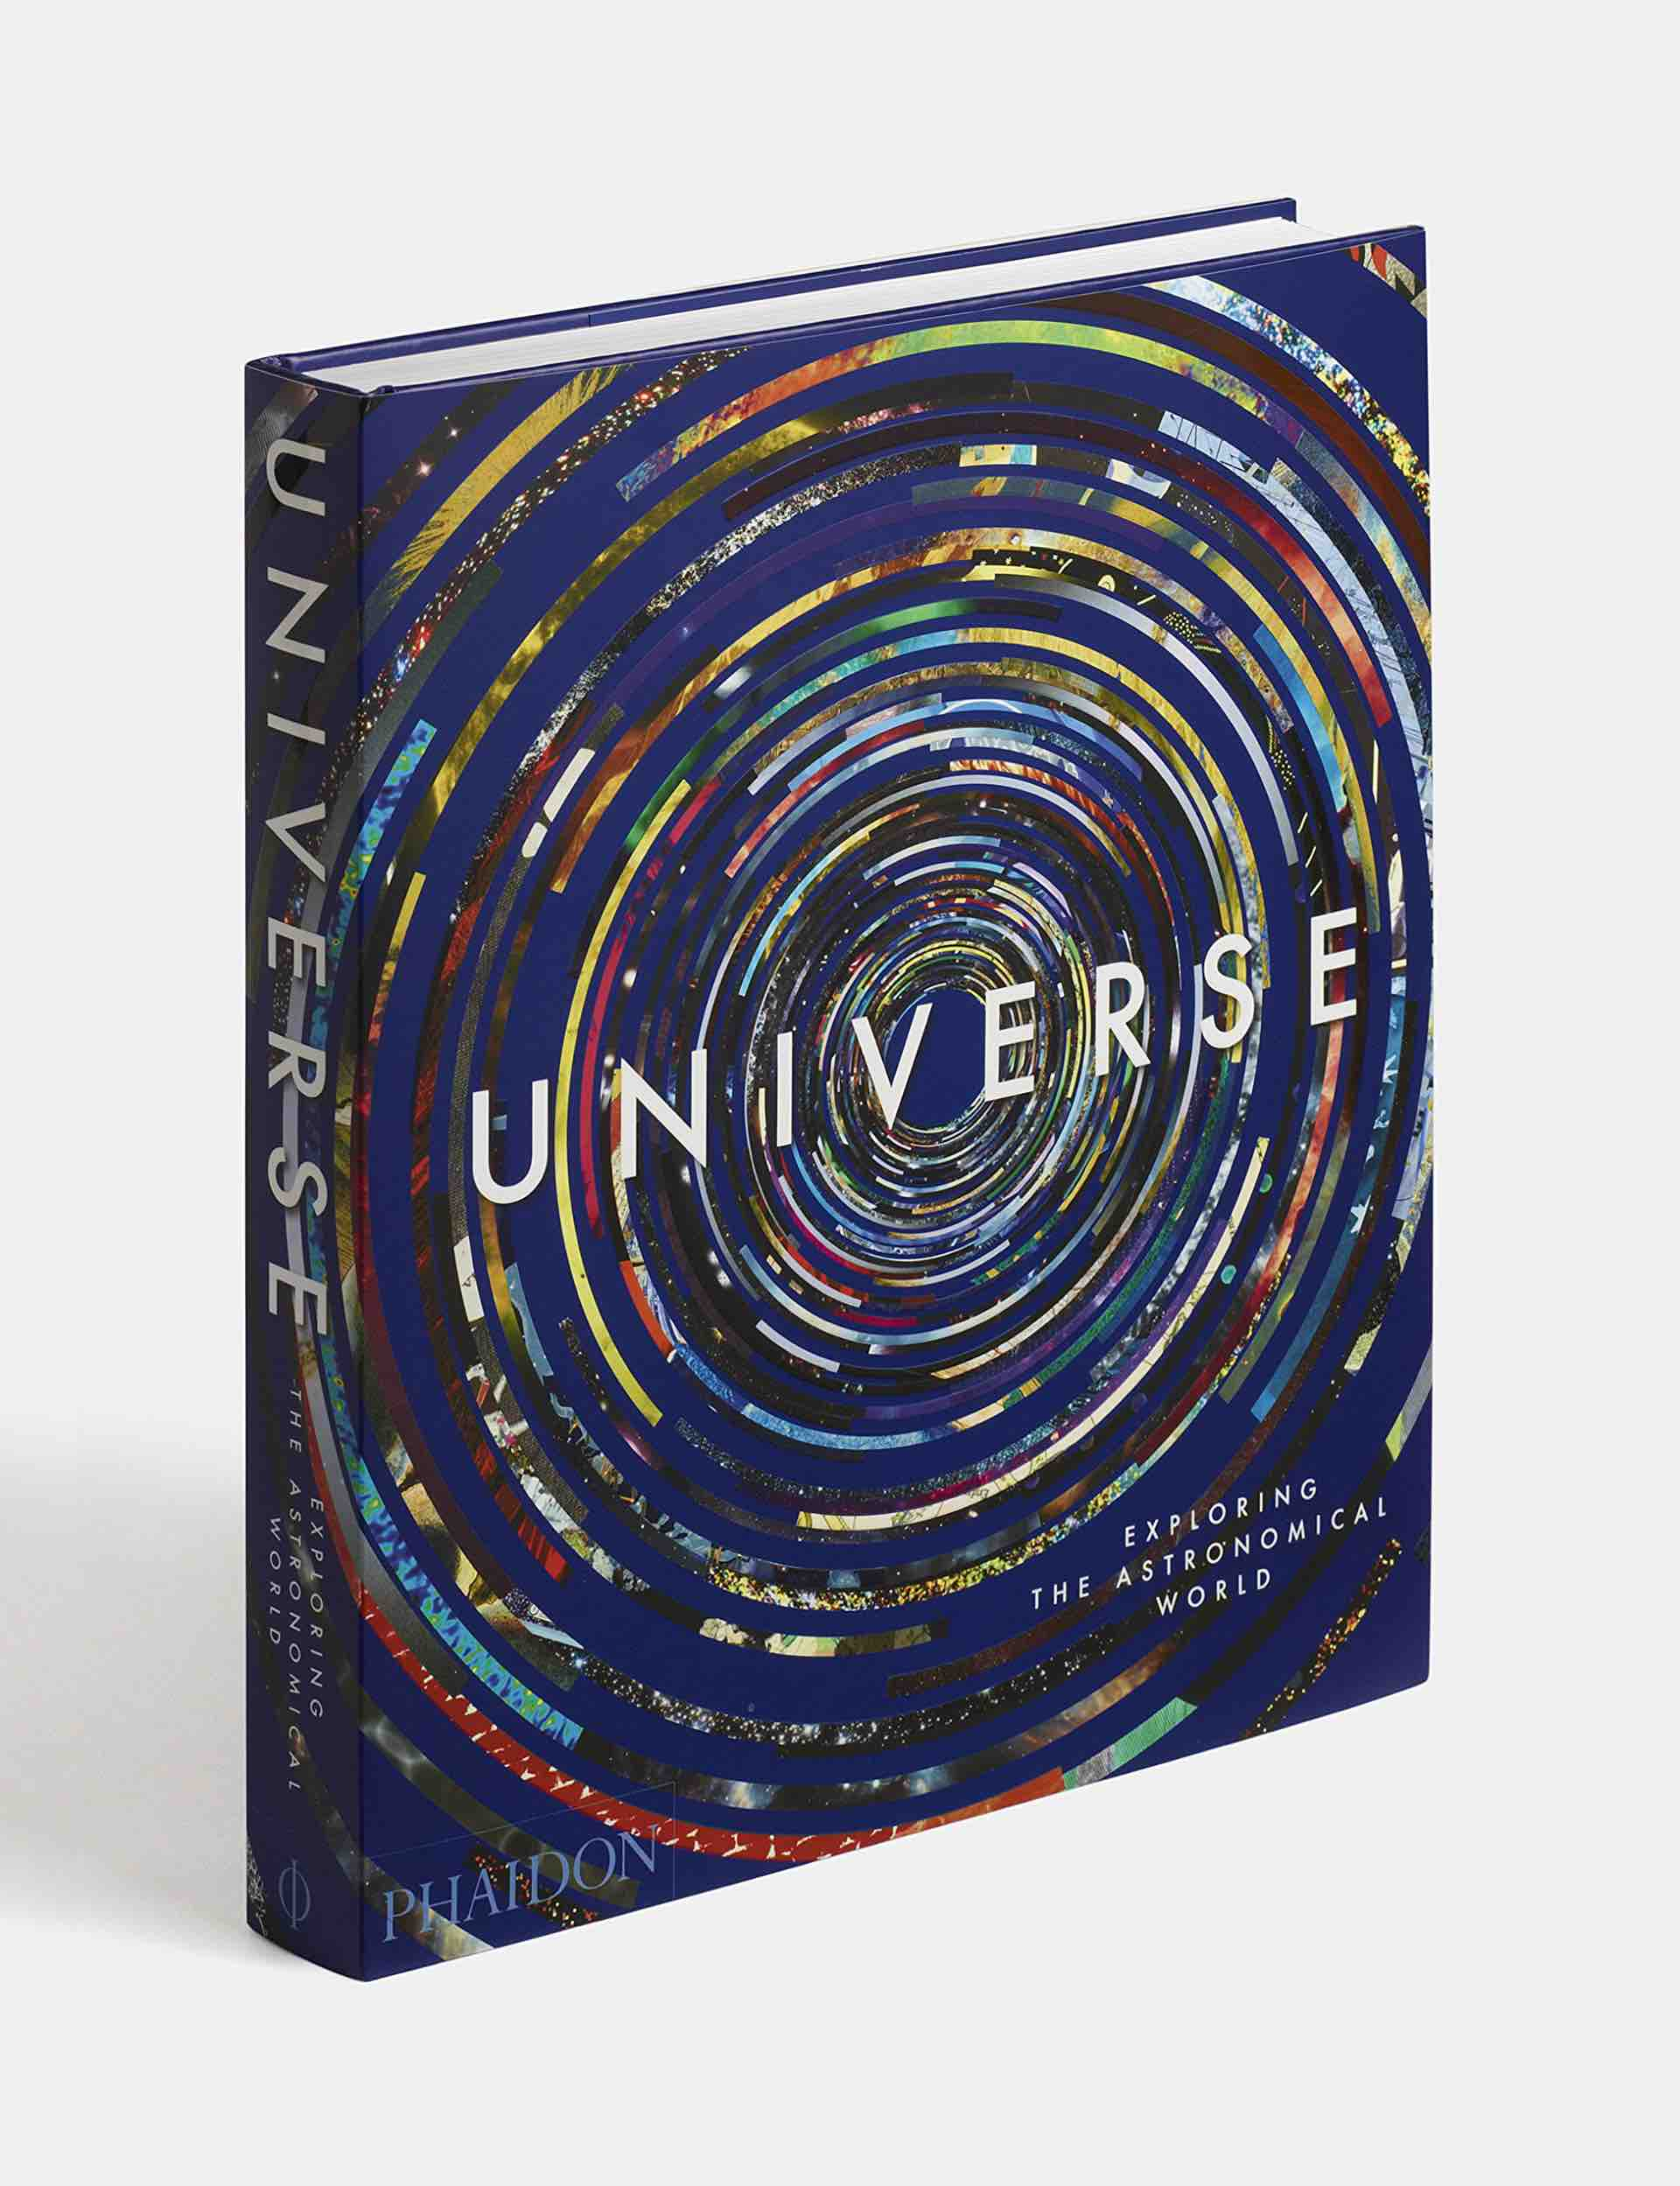 Universe by Phaidon. ($31 hardcover)